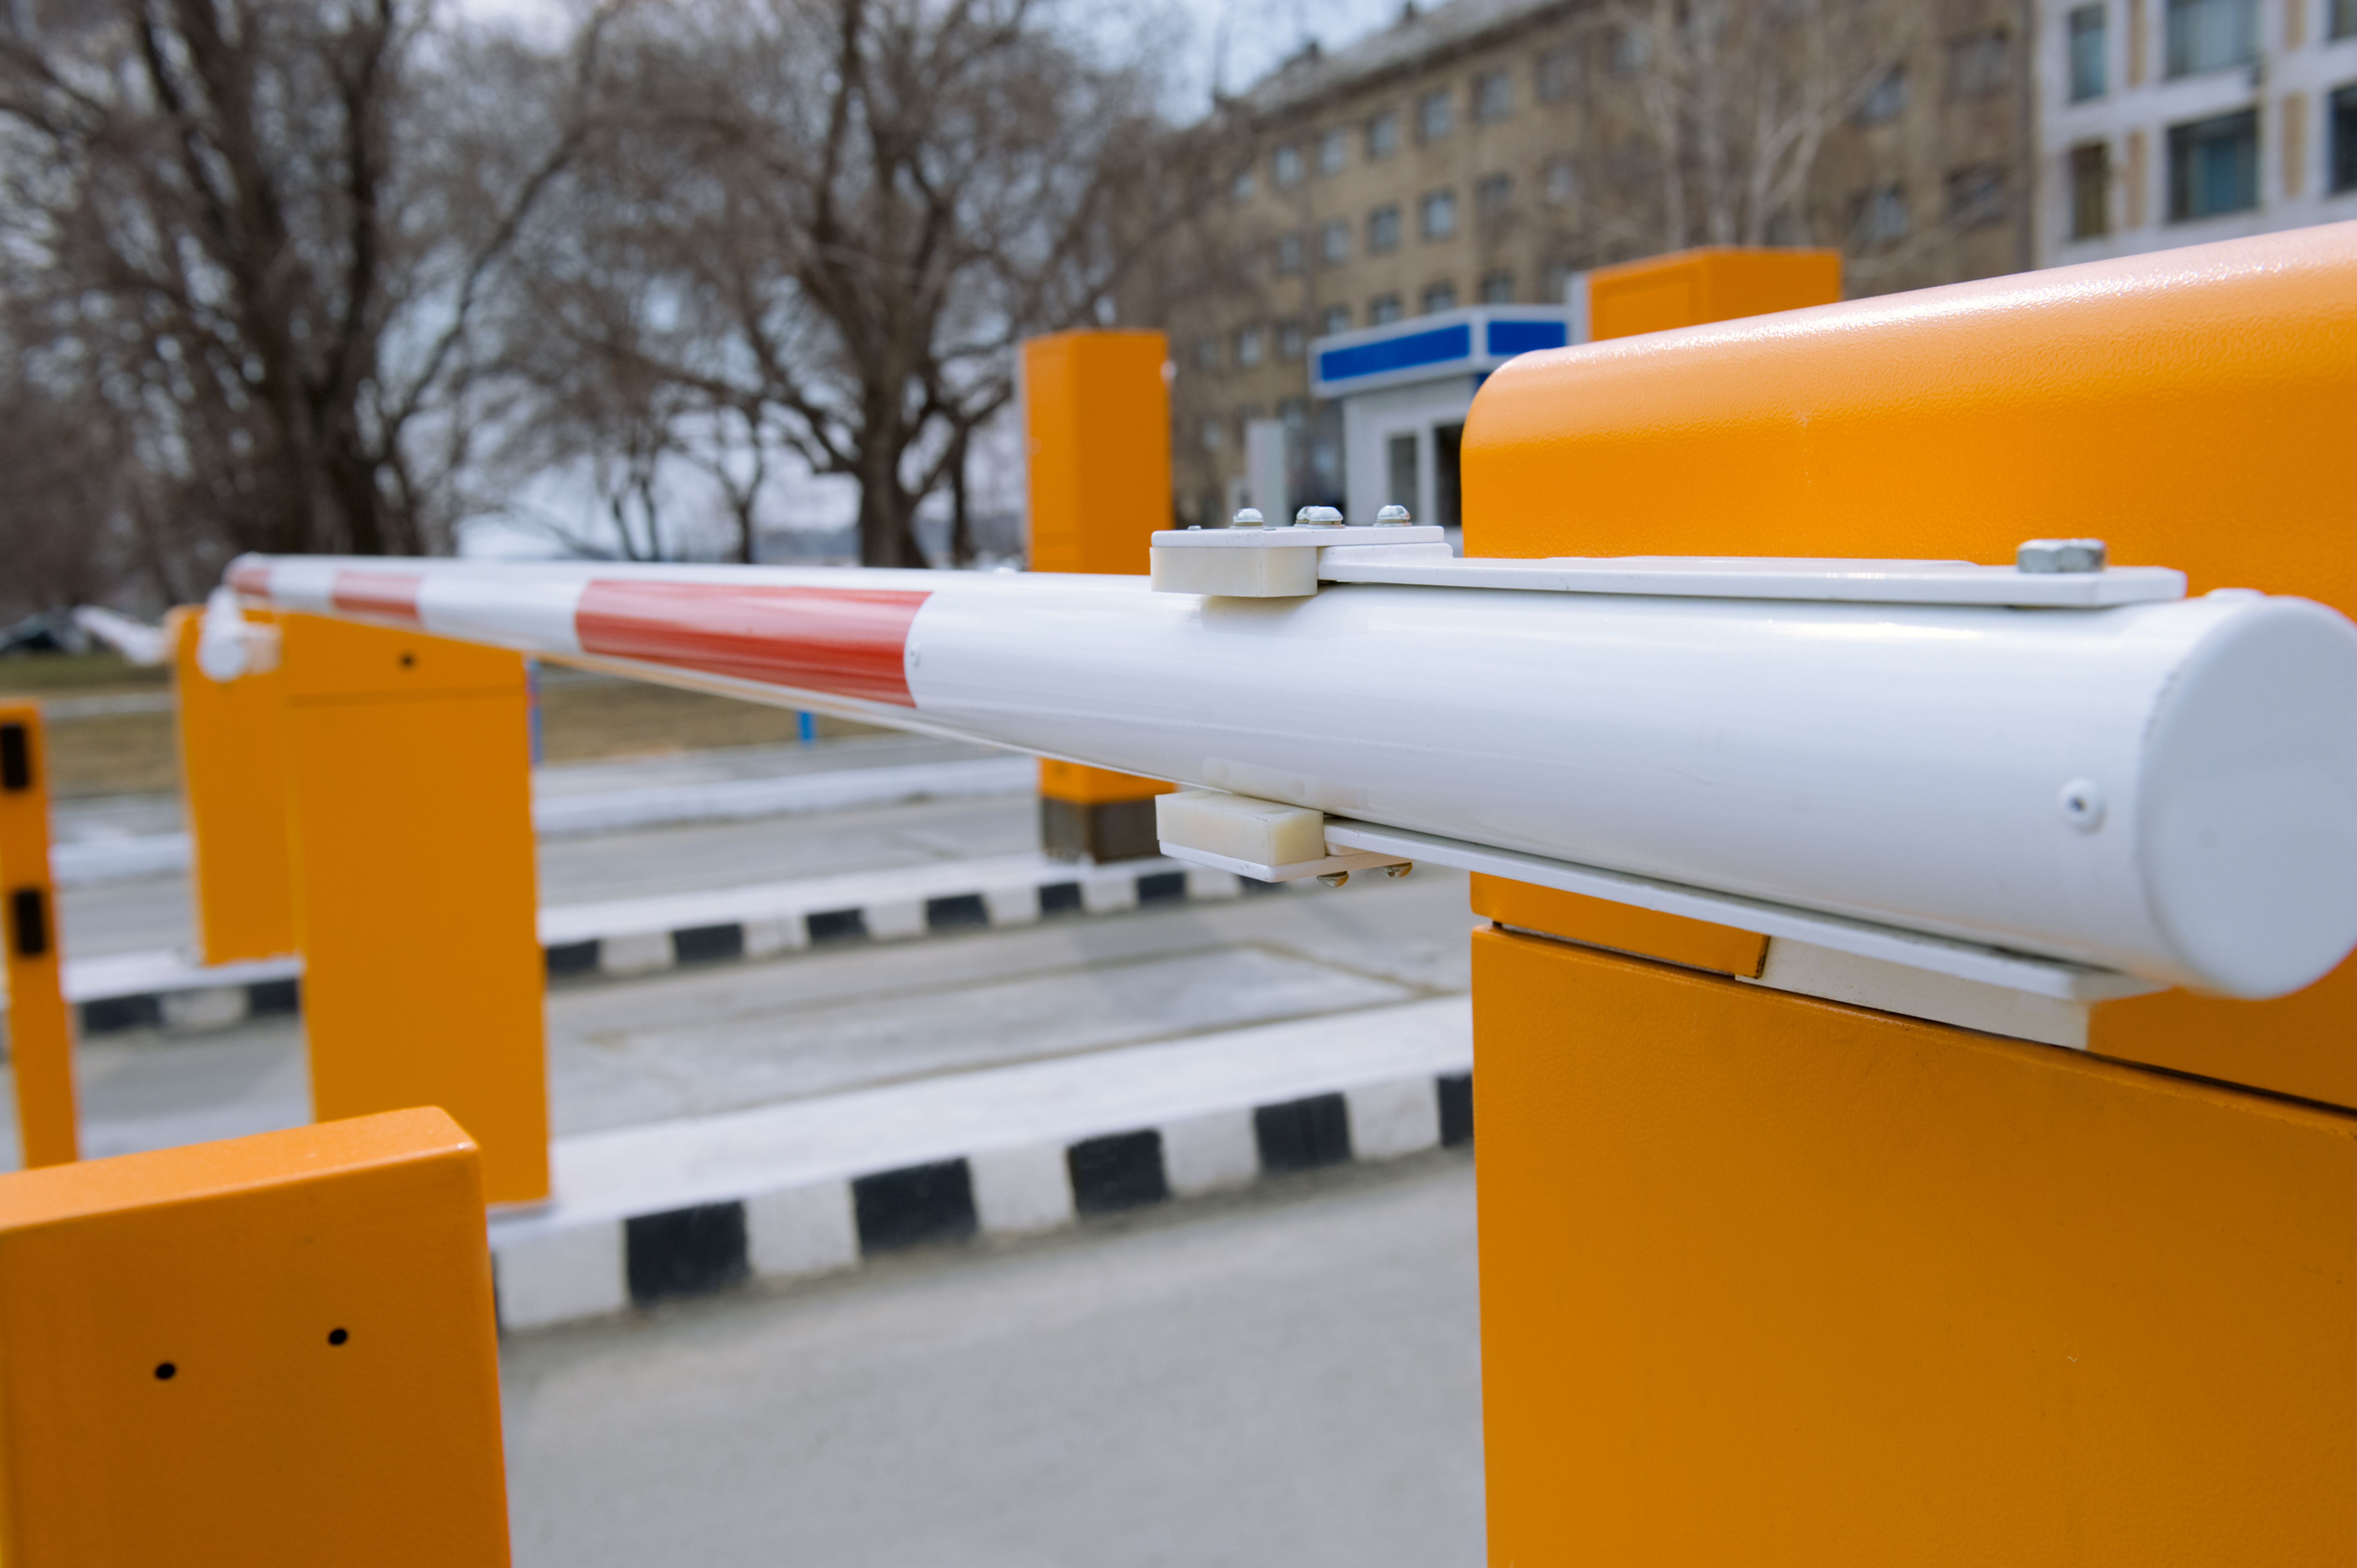 Yard access gate barrier system equipped with Coencorp's SM2 Secure technology allowing only authorized access through this checkpoint.